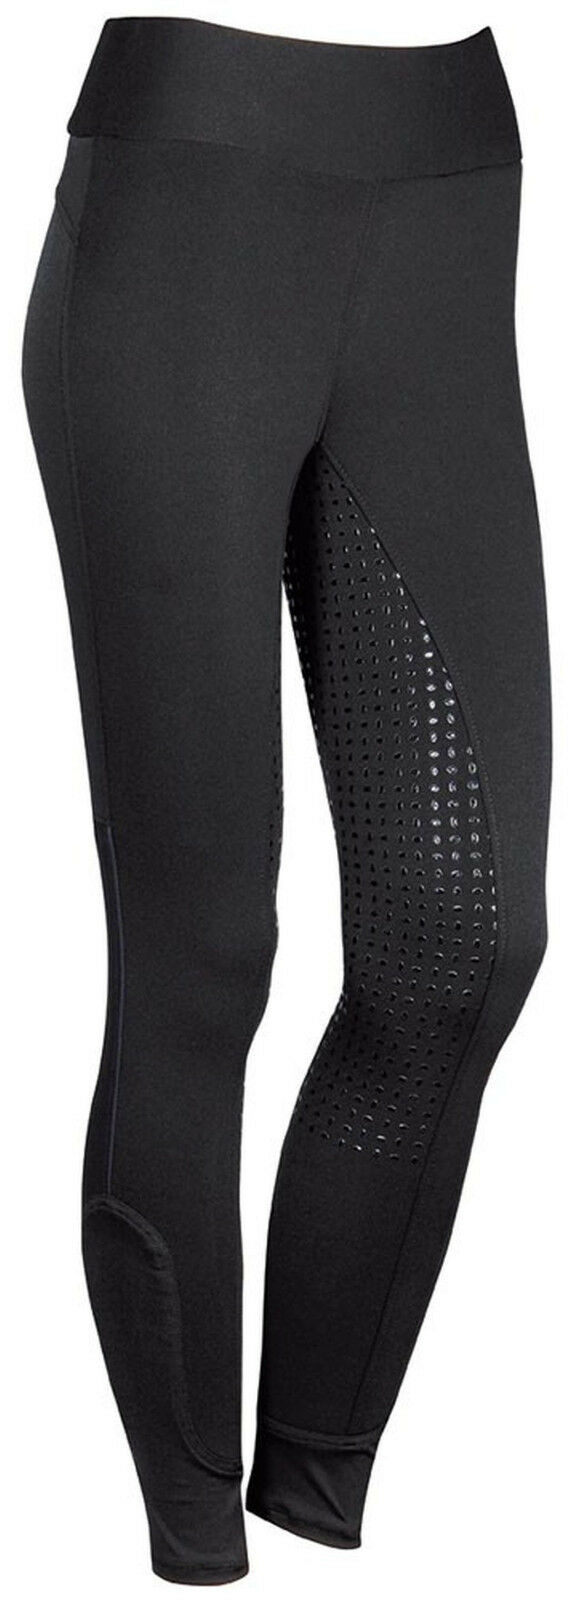 Harry's Horse señora reithose leggings invierno equitights silicona full Grip